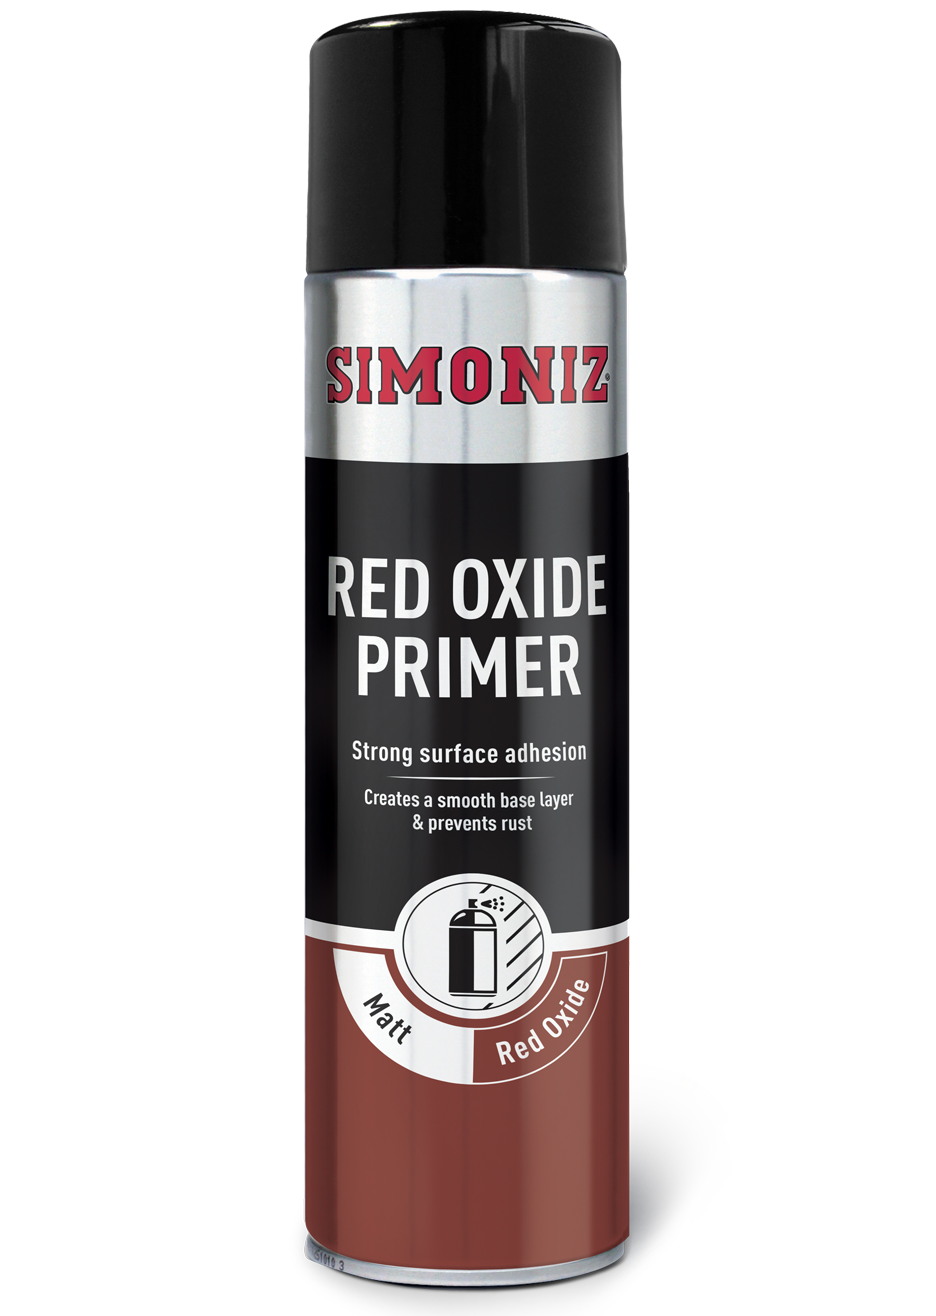 Holts Simoniz Red Oxide Primer Spray Paint Workshop Multiple Purpose Application Ebay